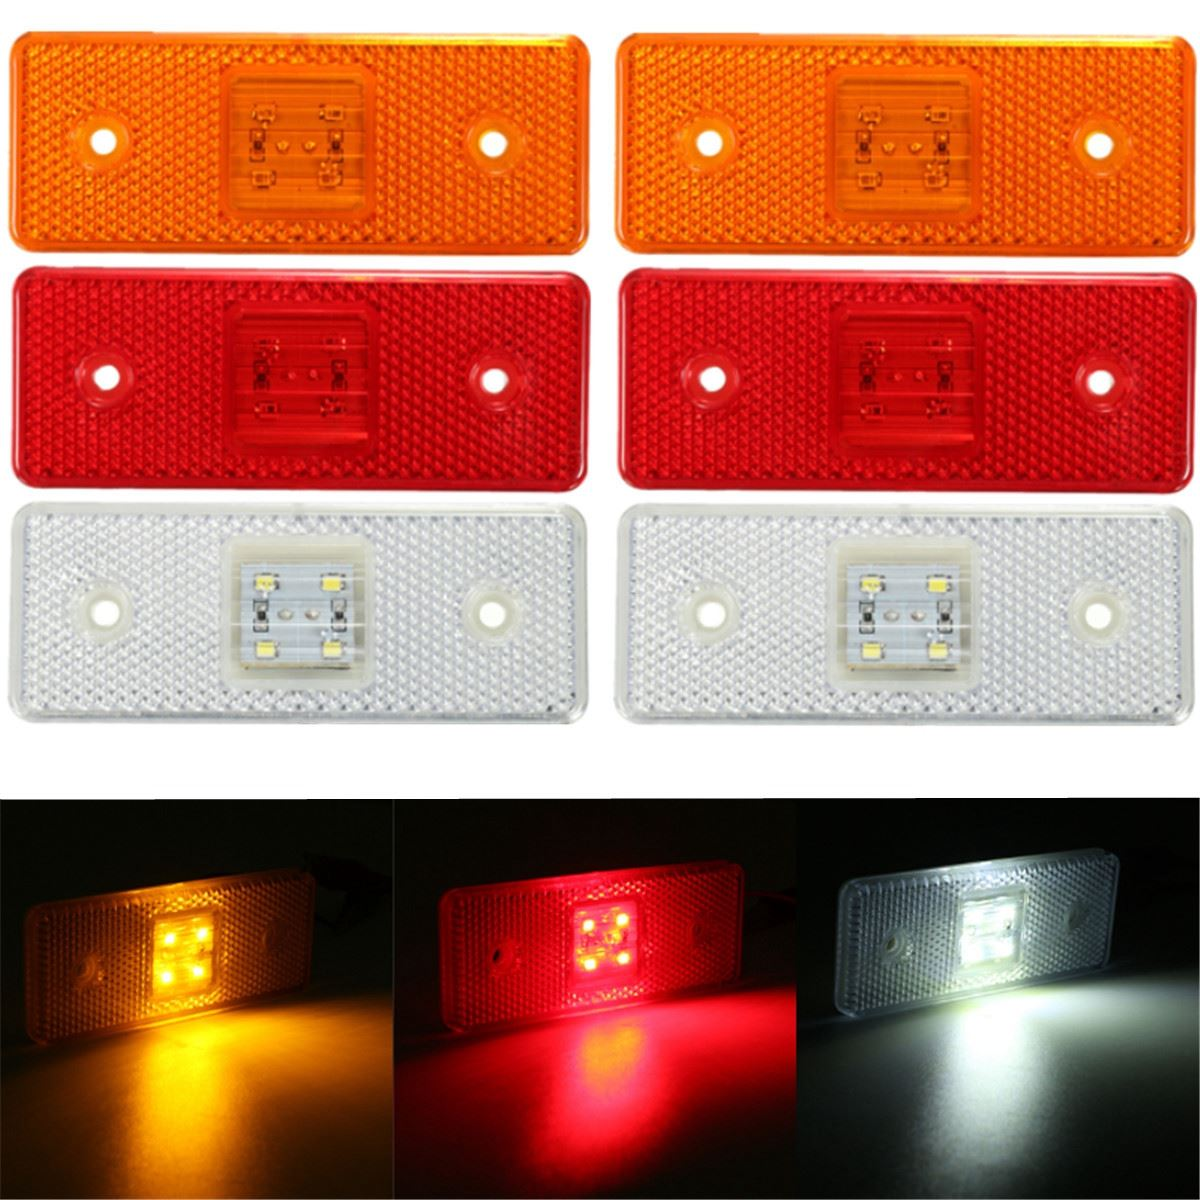 New 24V 4 LED Truck Trailer Lorry Side Marker Light Lamp Amber White Red люстра накладная 06 2484 0333 24 gold amber and white crystal n light